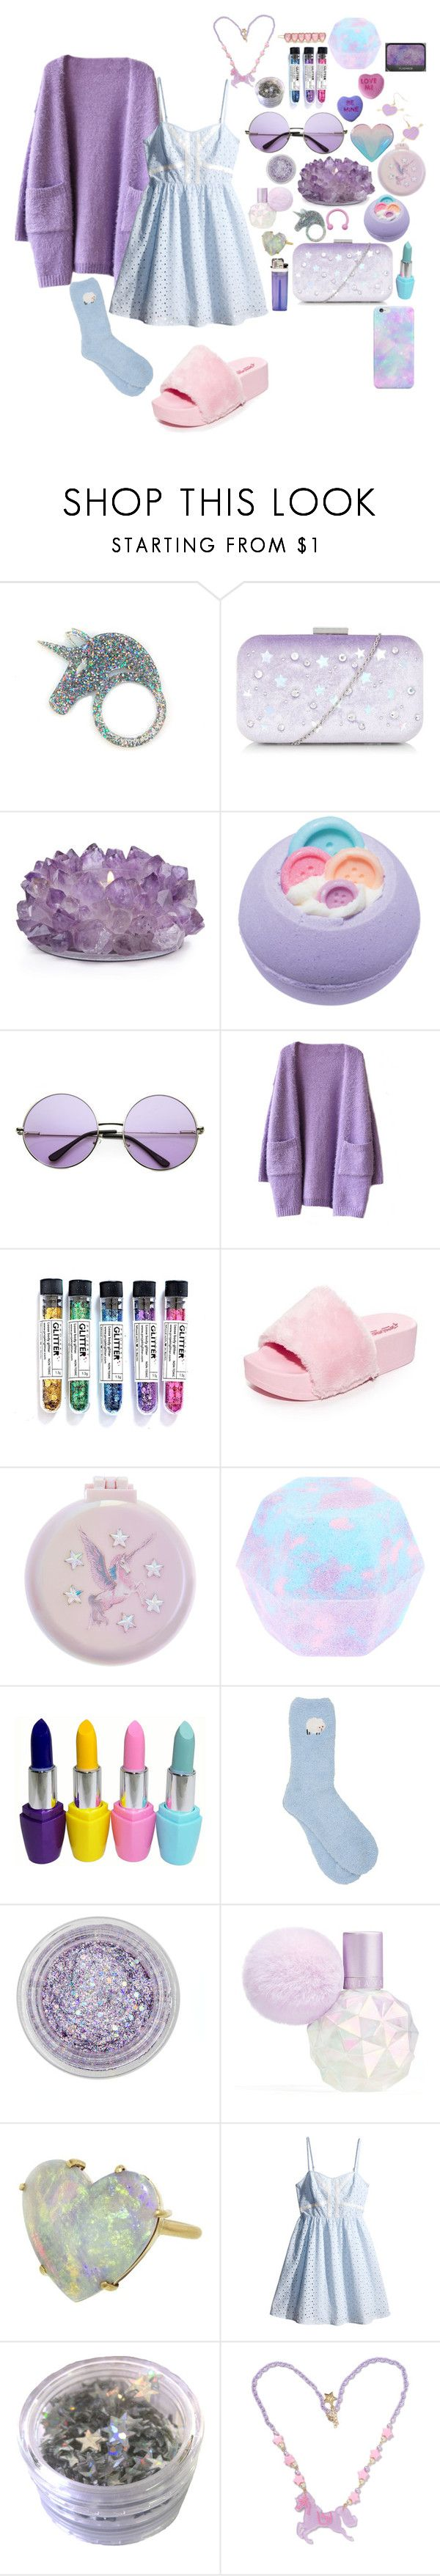 """""""💙"""" by ashtrayflowers ❤ liked on Polyvore featuring INDIE HAIR, Jeffrey Campbell, Monsoon, Suite 7, M&Co, NARS Cosmetics, Irene Neuwirth and H&M"""